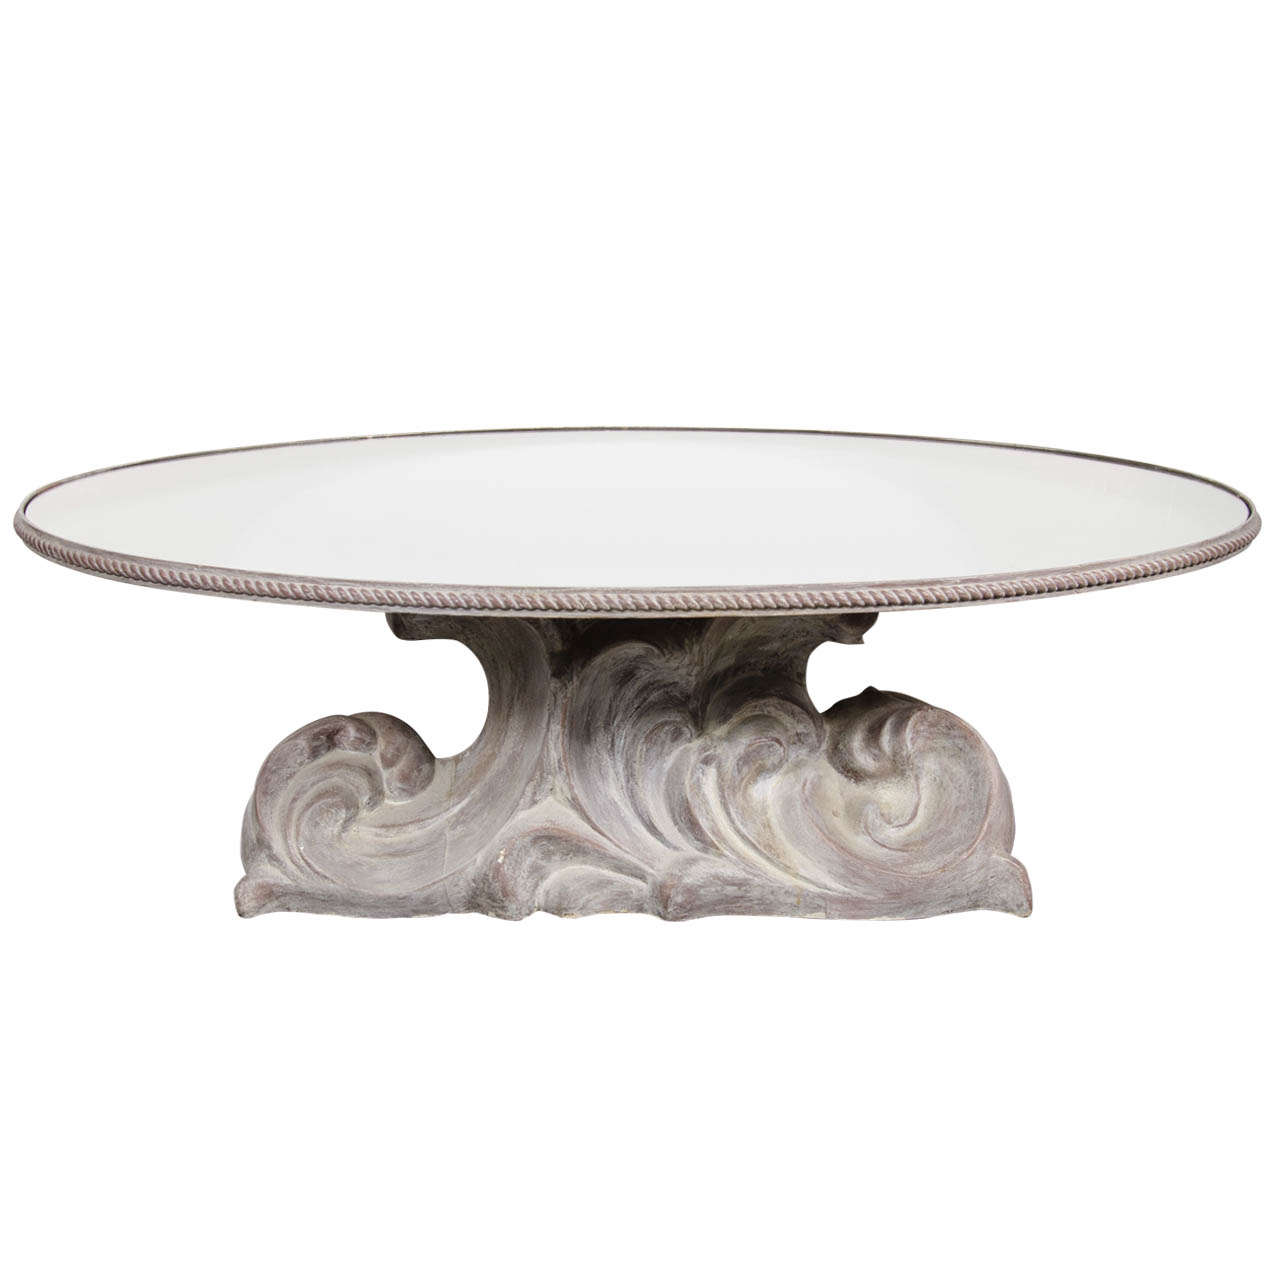 Elegant Oval Resin Cast Cocktail Table in The Manner of Serge Roche